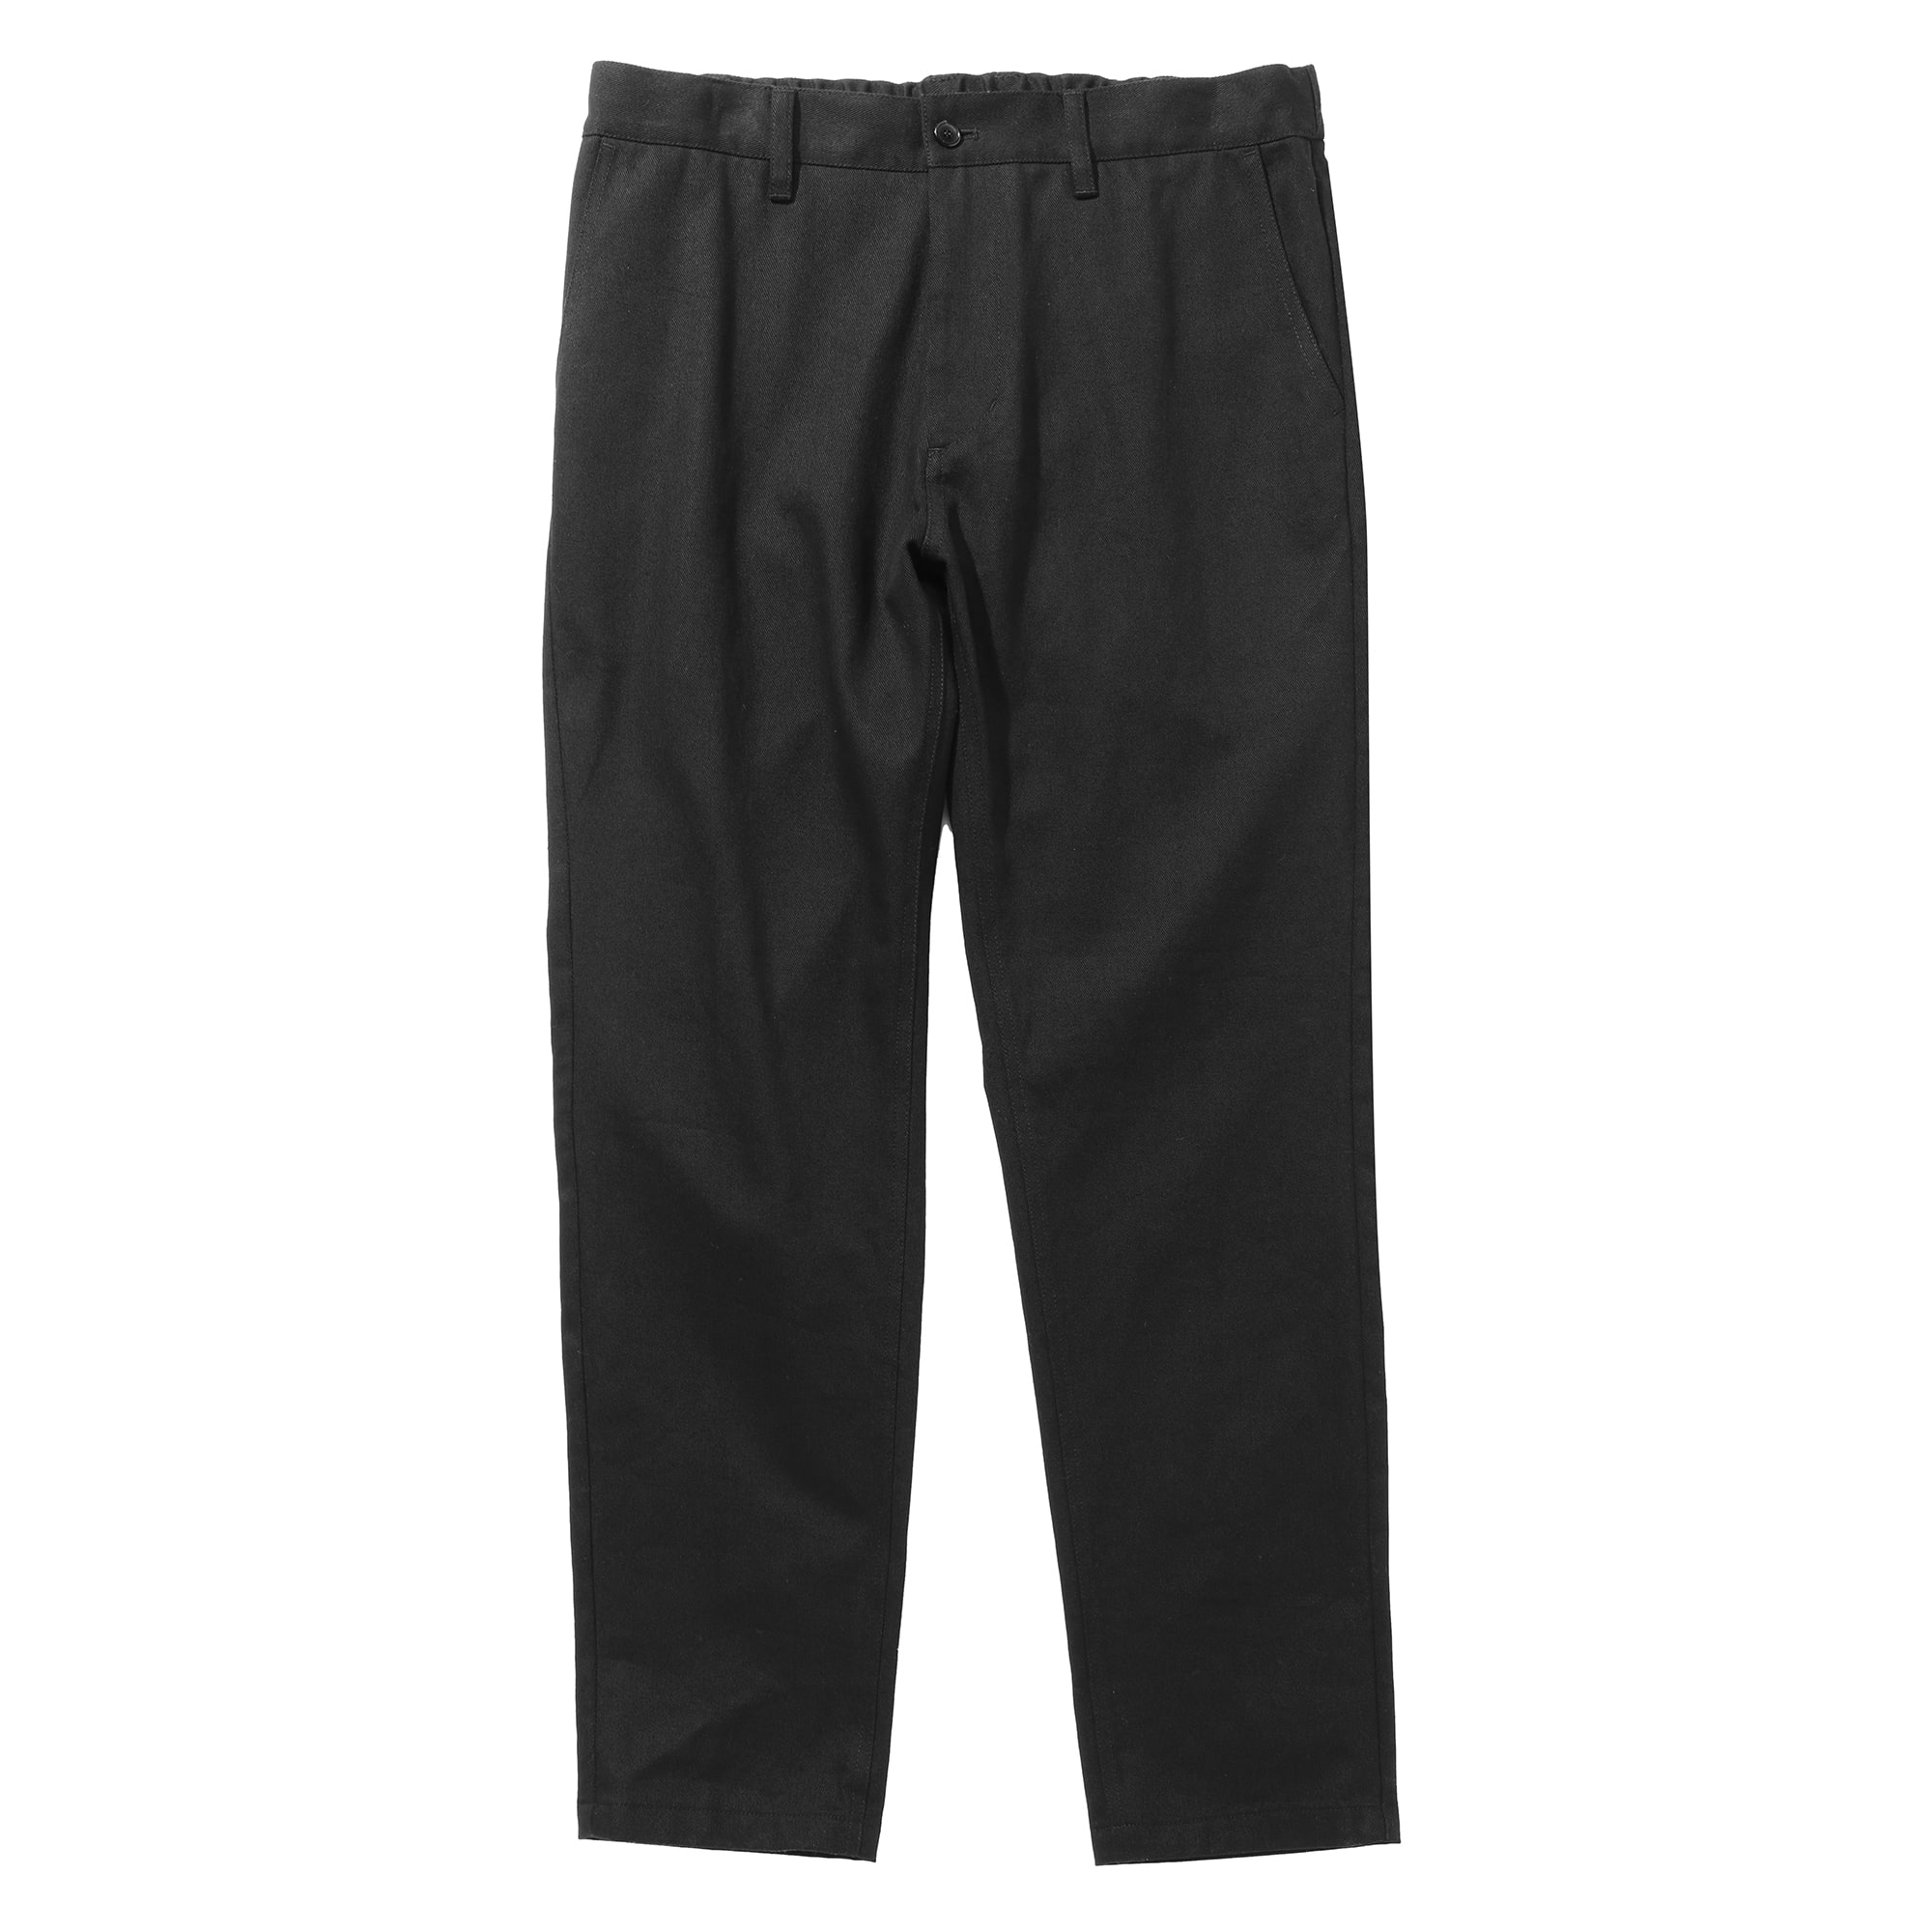 19FW MM Standard Cotton Pants MYFAX4516